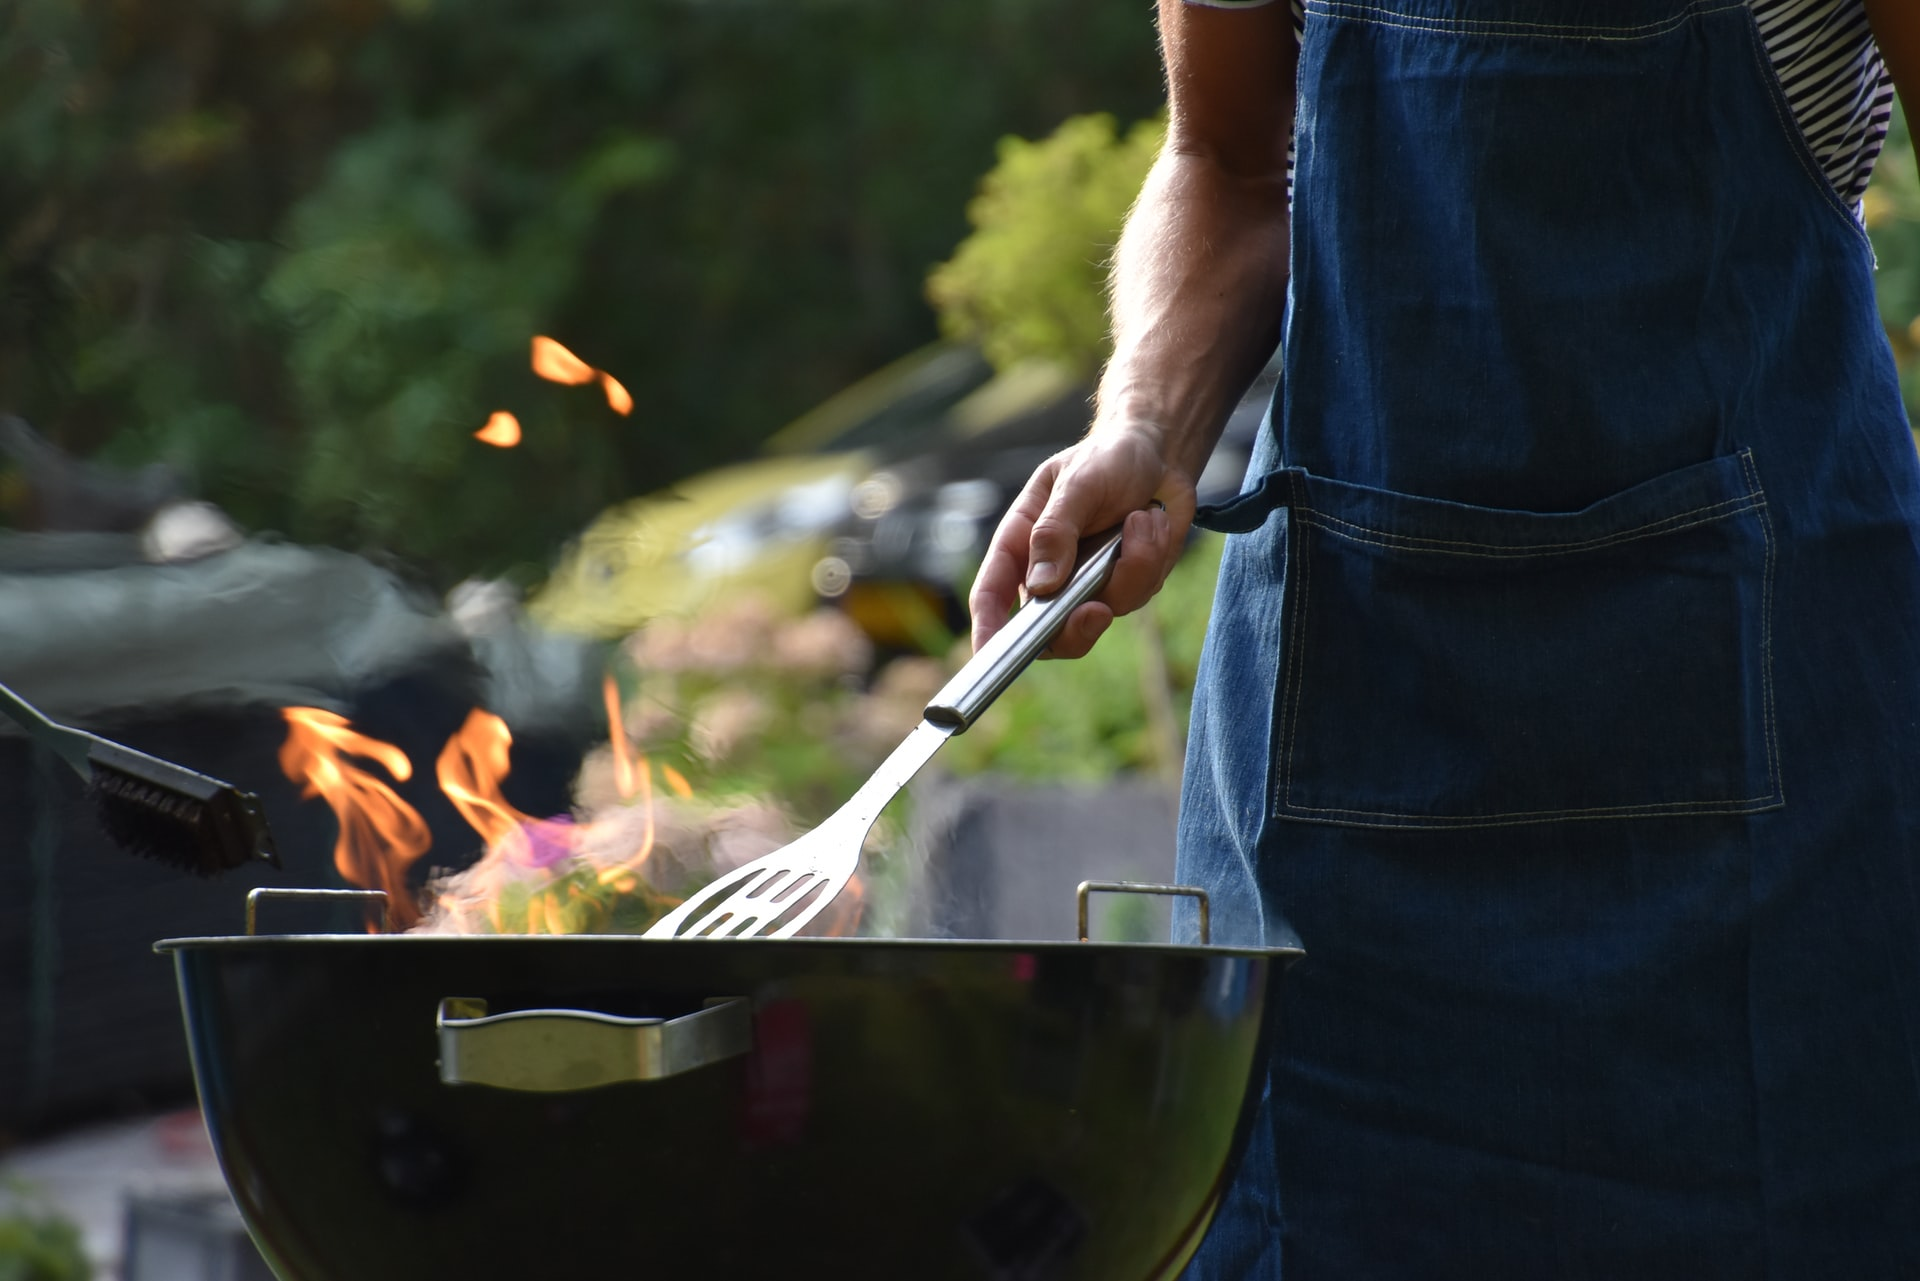 Man cooking on the grill